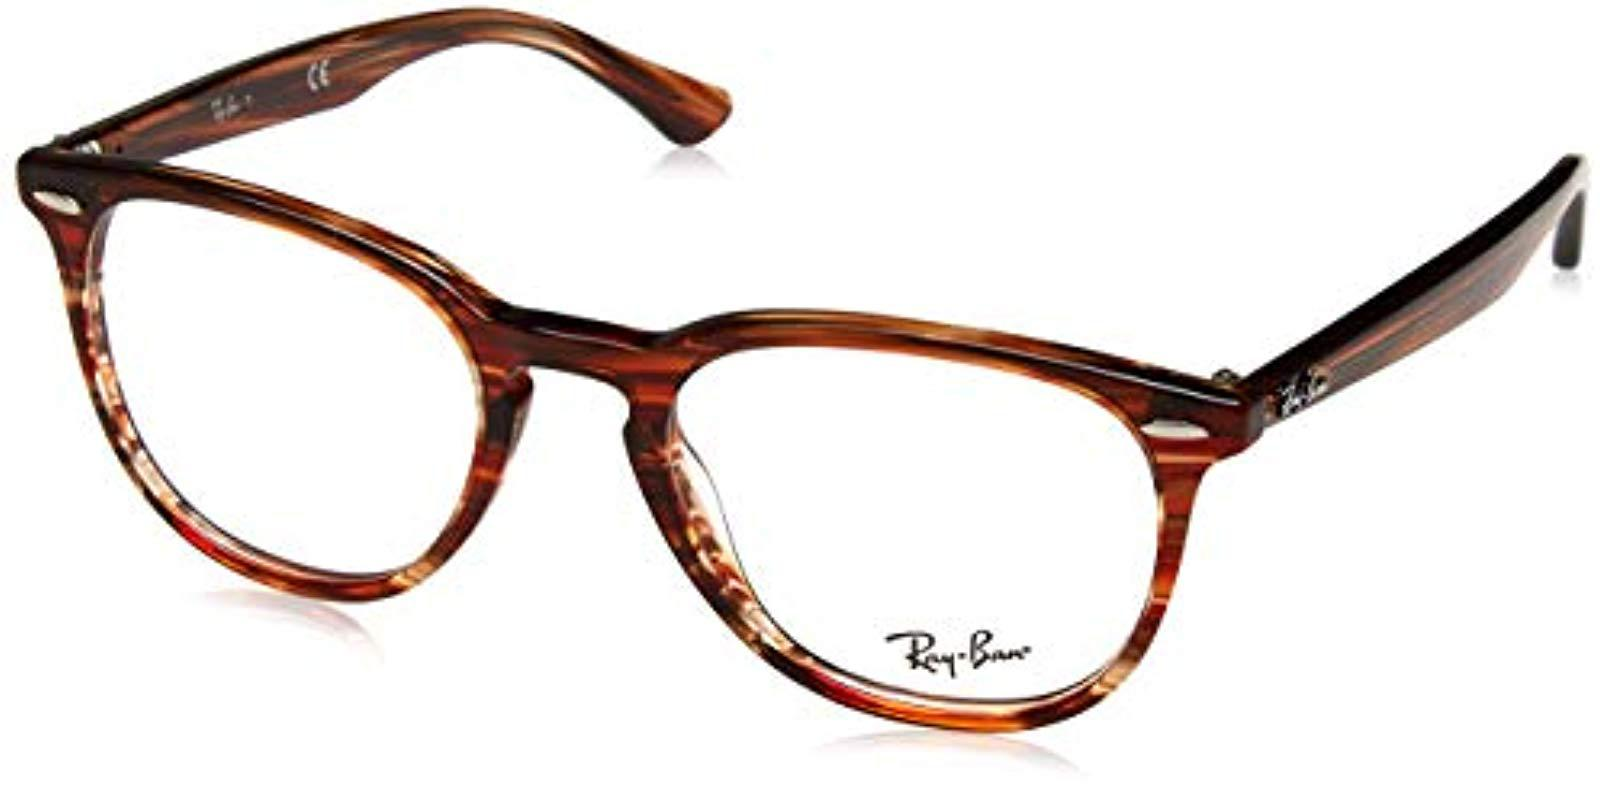 77ceda08af4 Ray-Ban Rx7159 5751 52 Glasses In Brown Beige Striped Rx7159 5751 52 ...